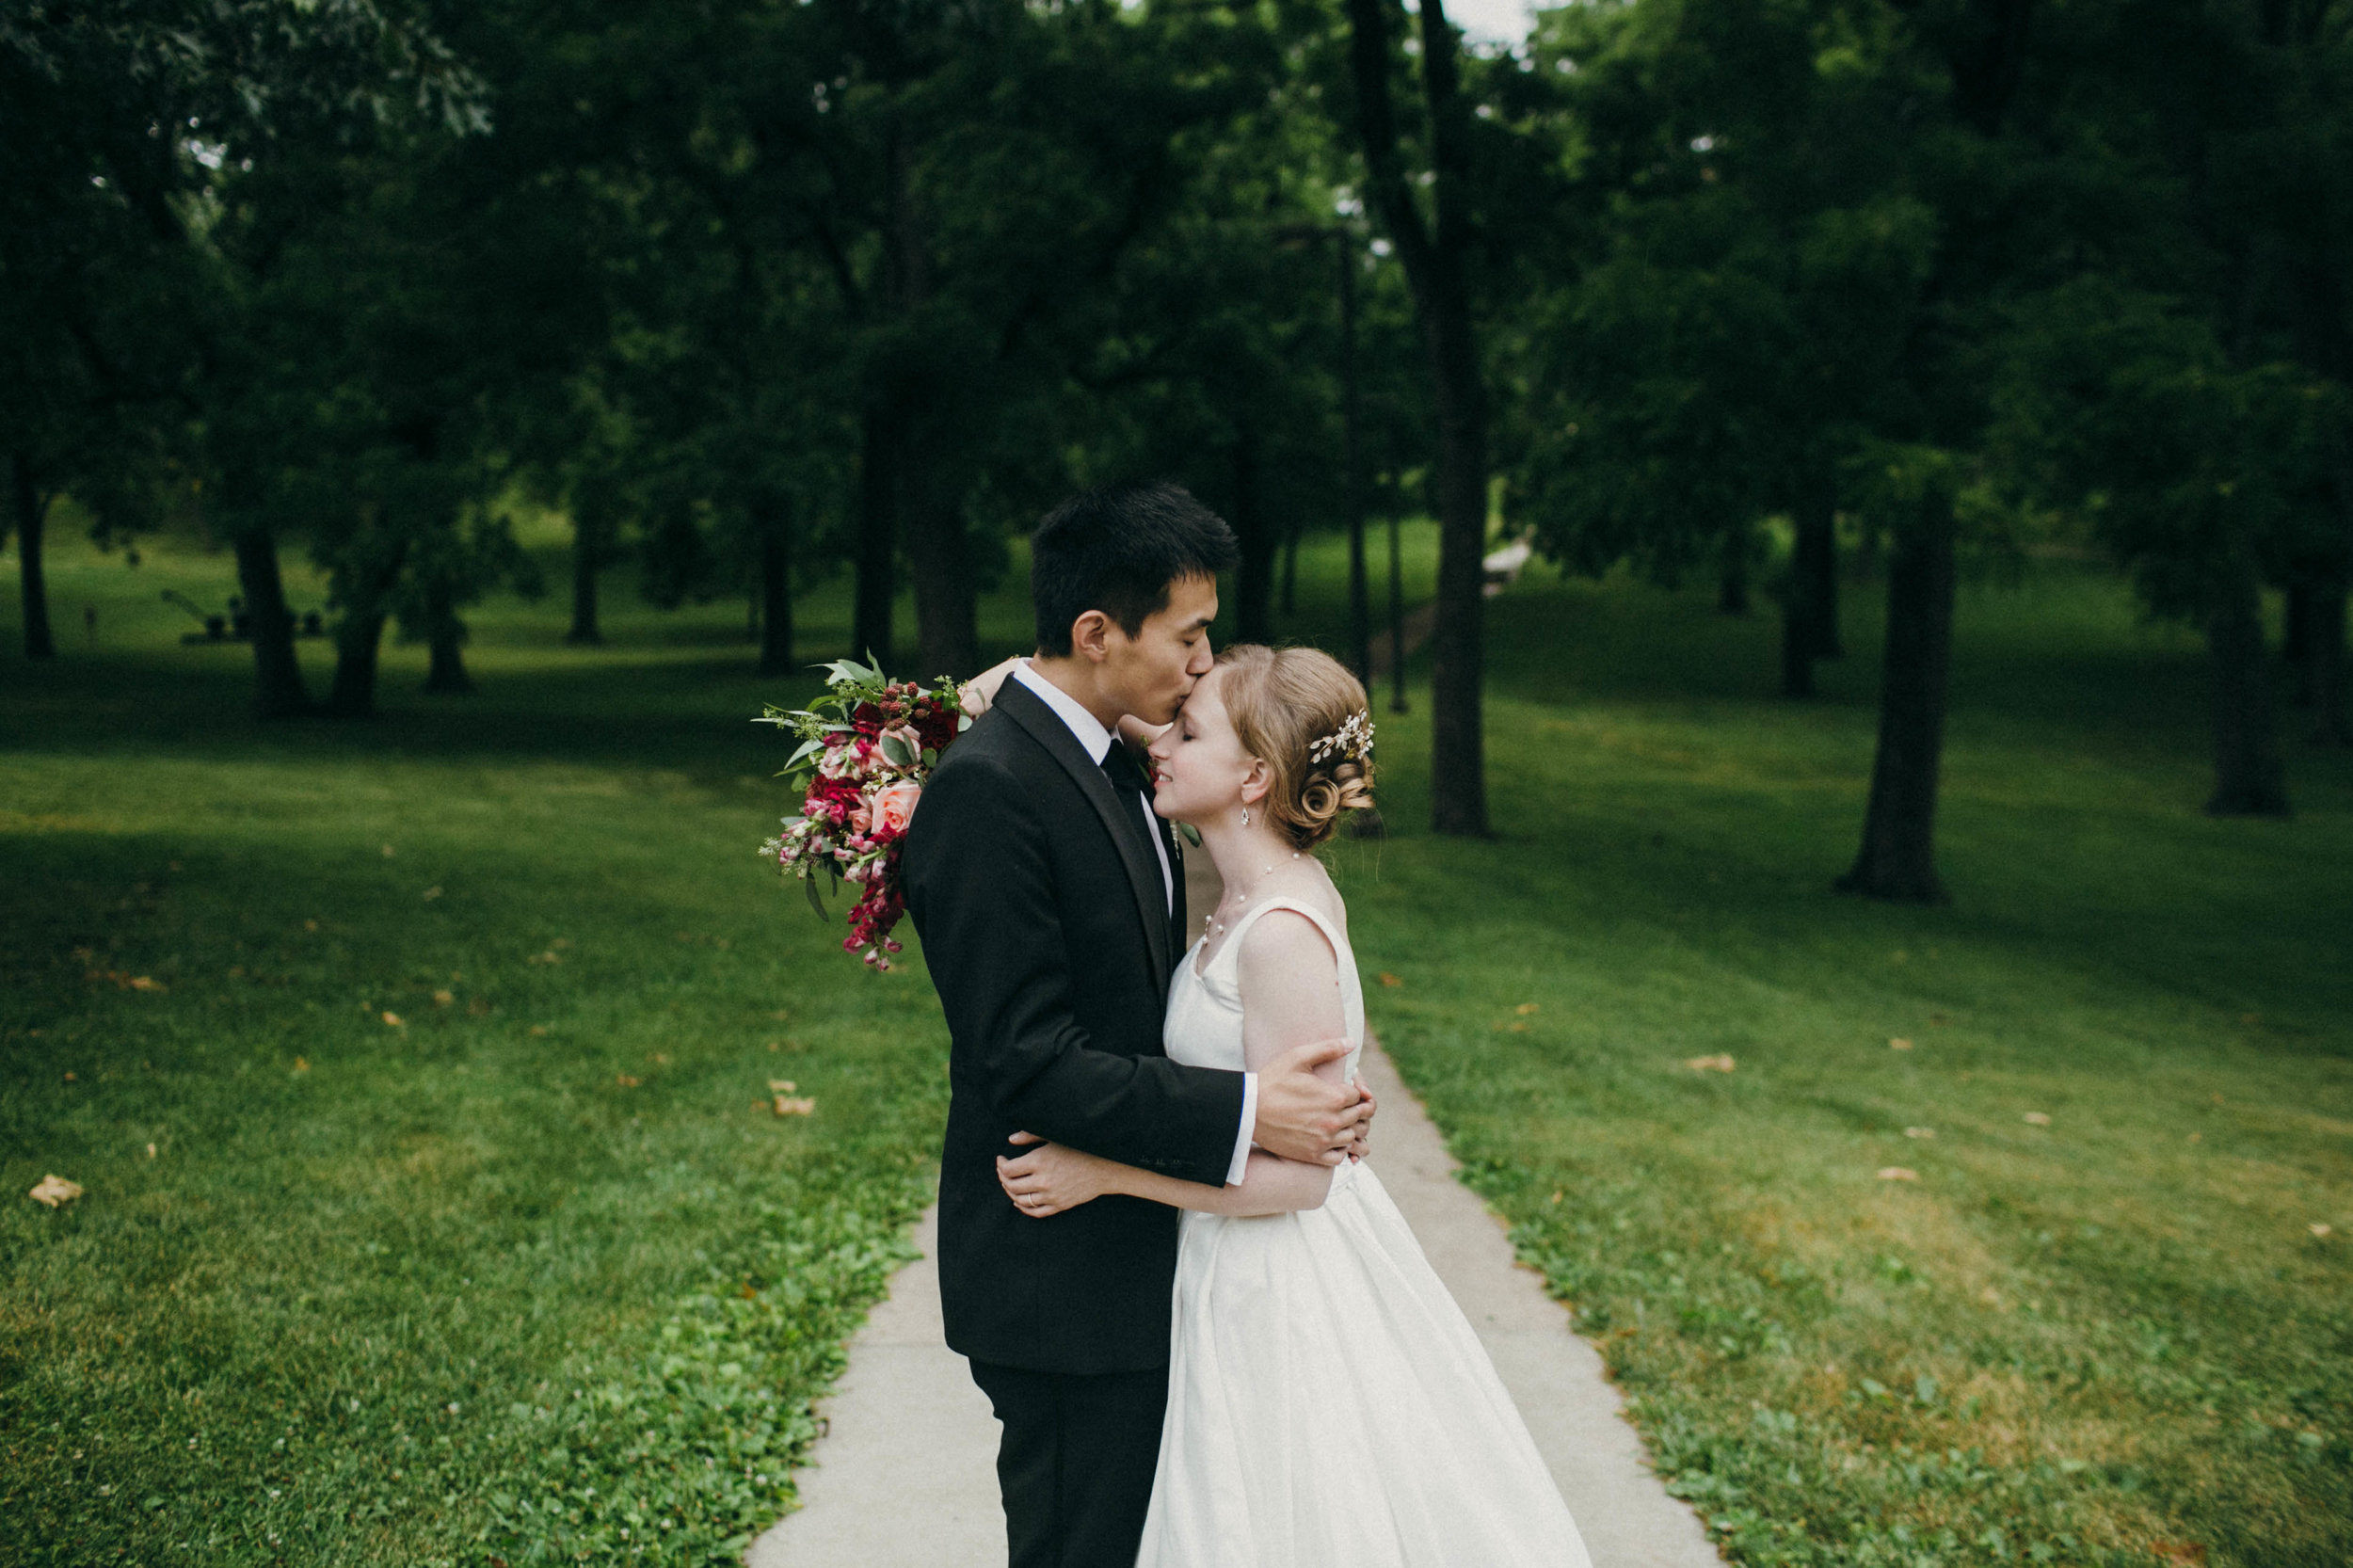 Joanna & Puyin - Married (962 of 985).jpg